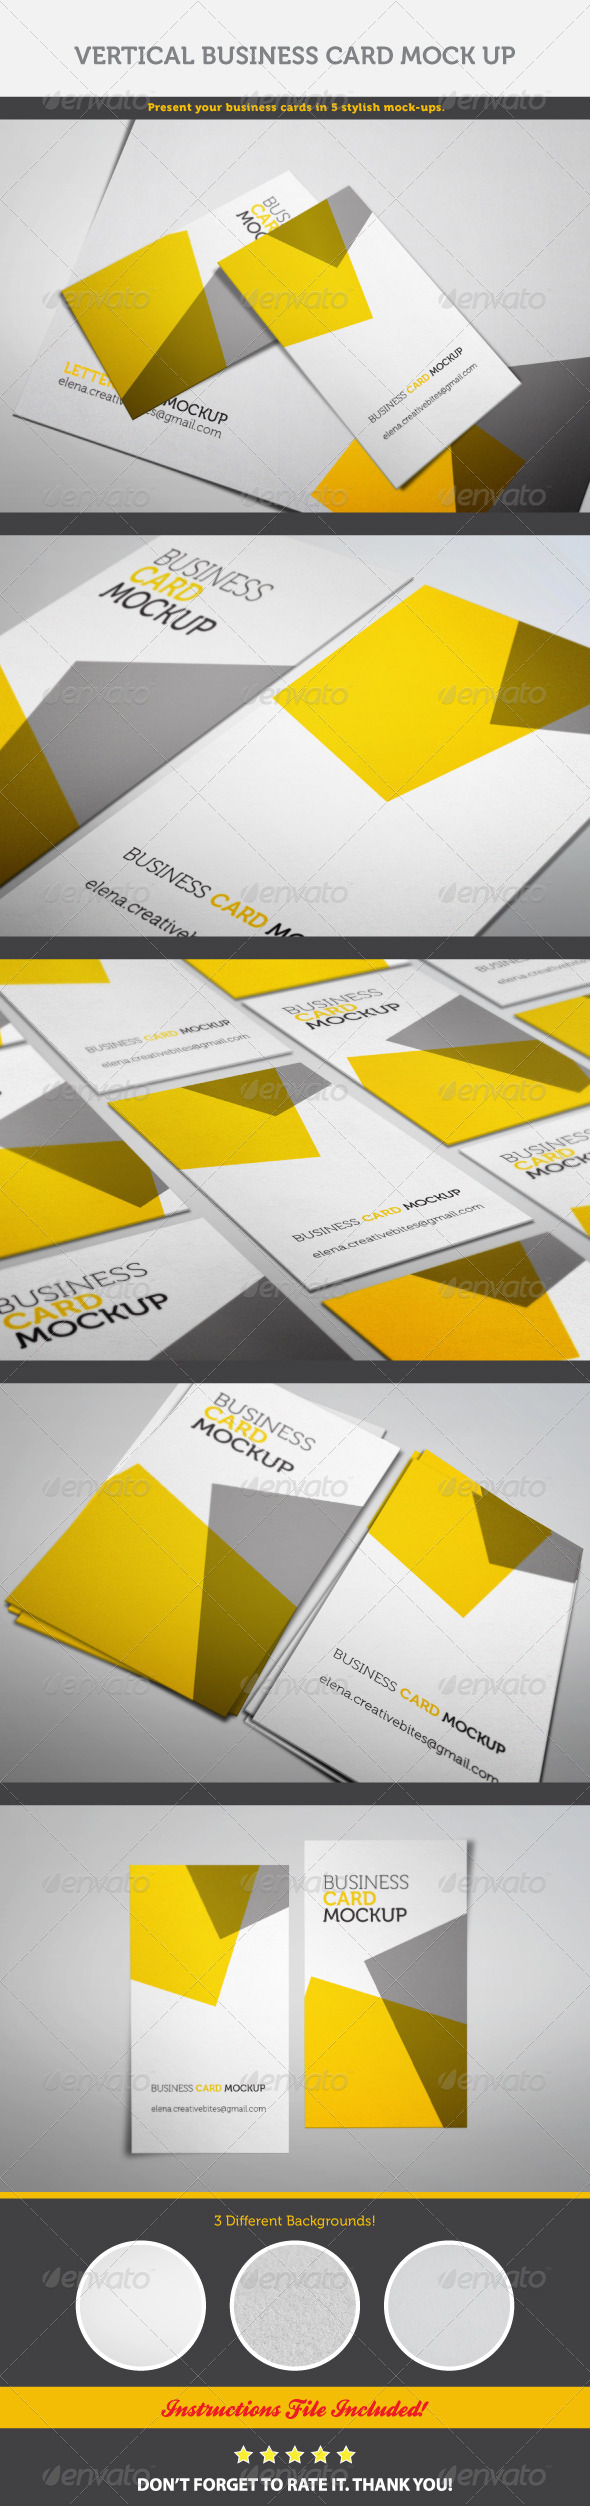 GraphicRiver Vertical Business Card Mock-up 6924484